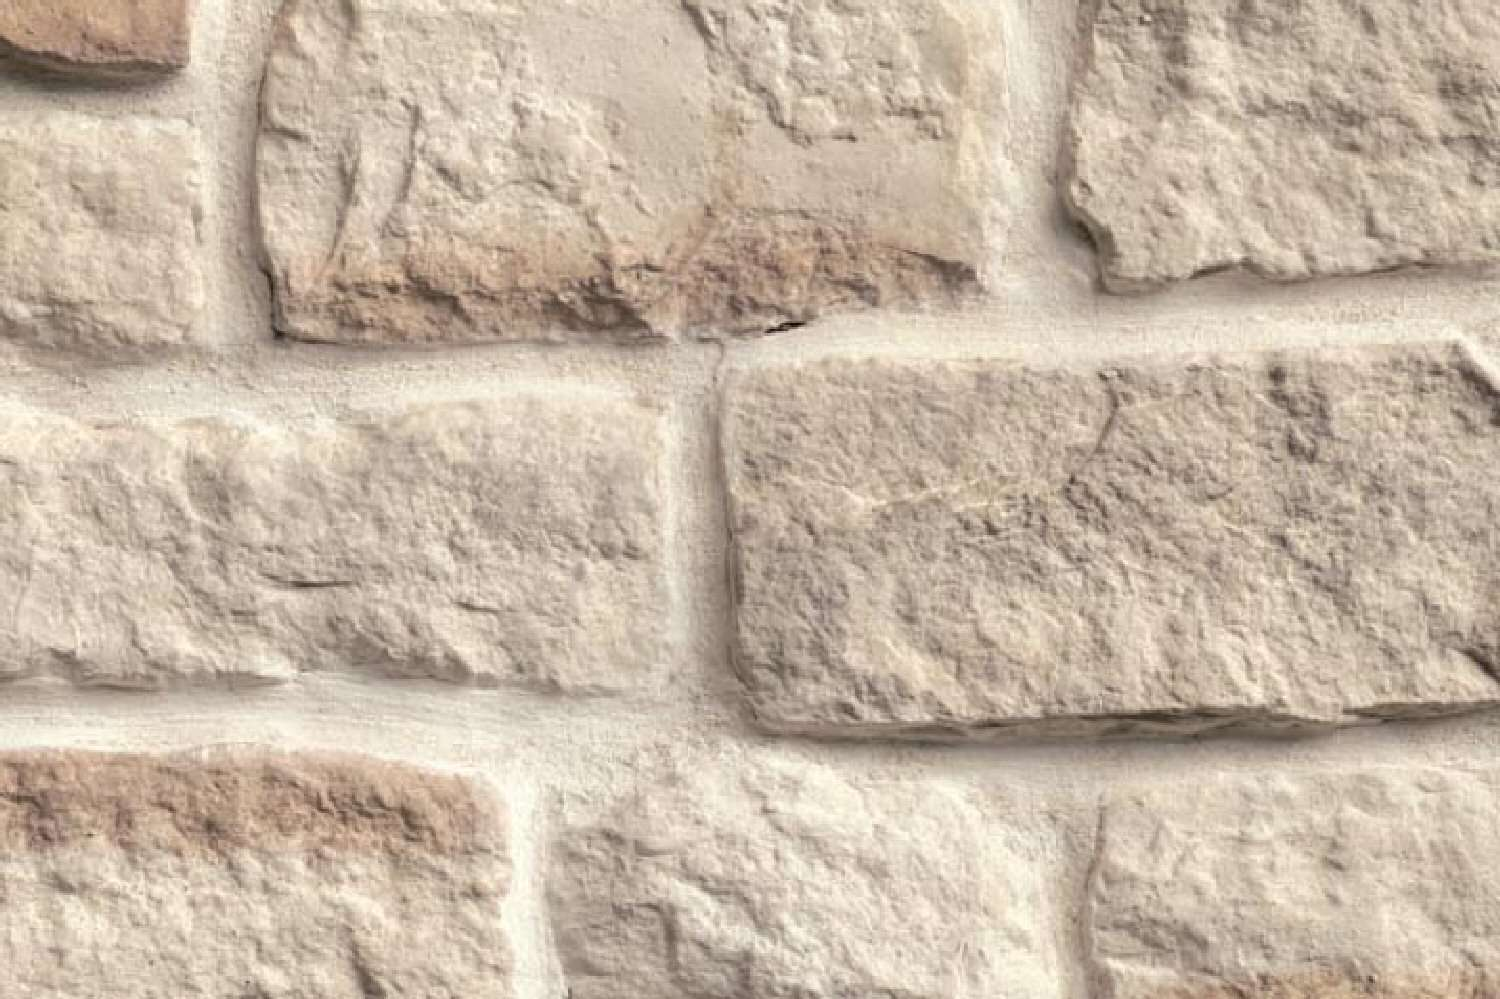 Michael Thronson Masonry Thin Stone Veneer Projects And: What Are Austin Stone And Austin Limestone?